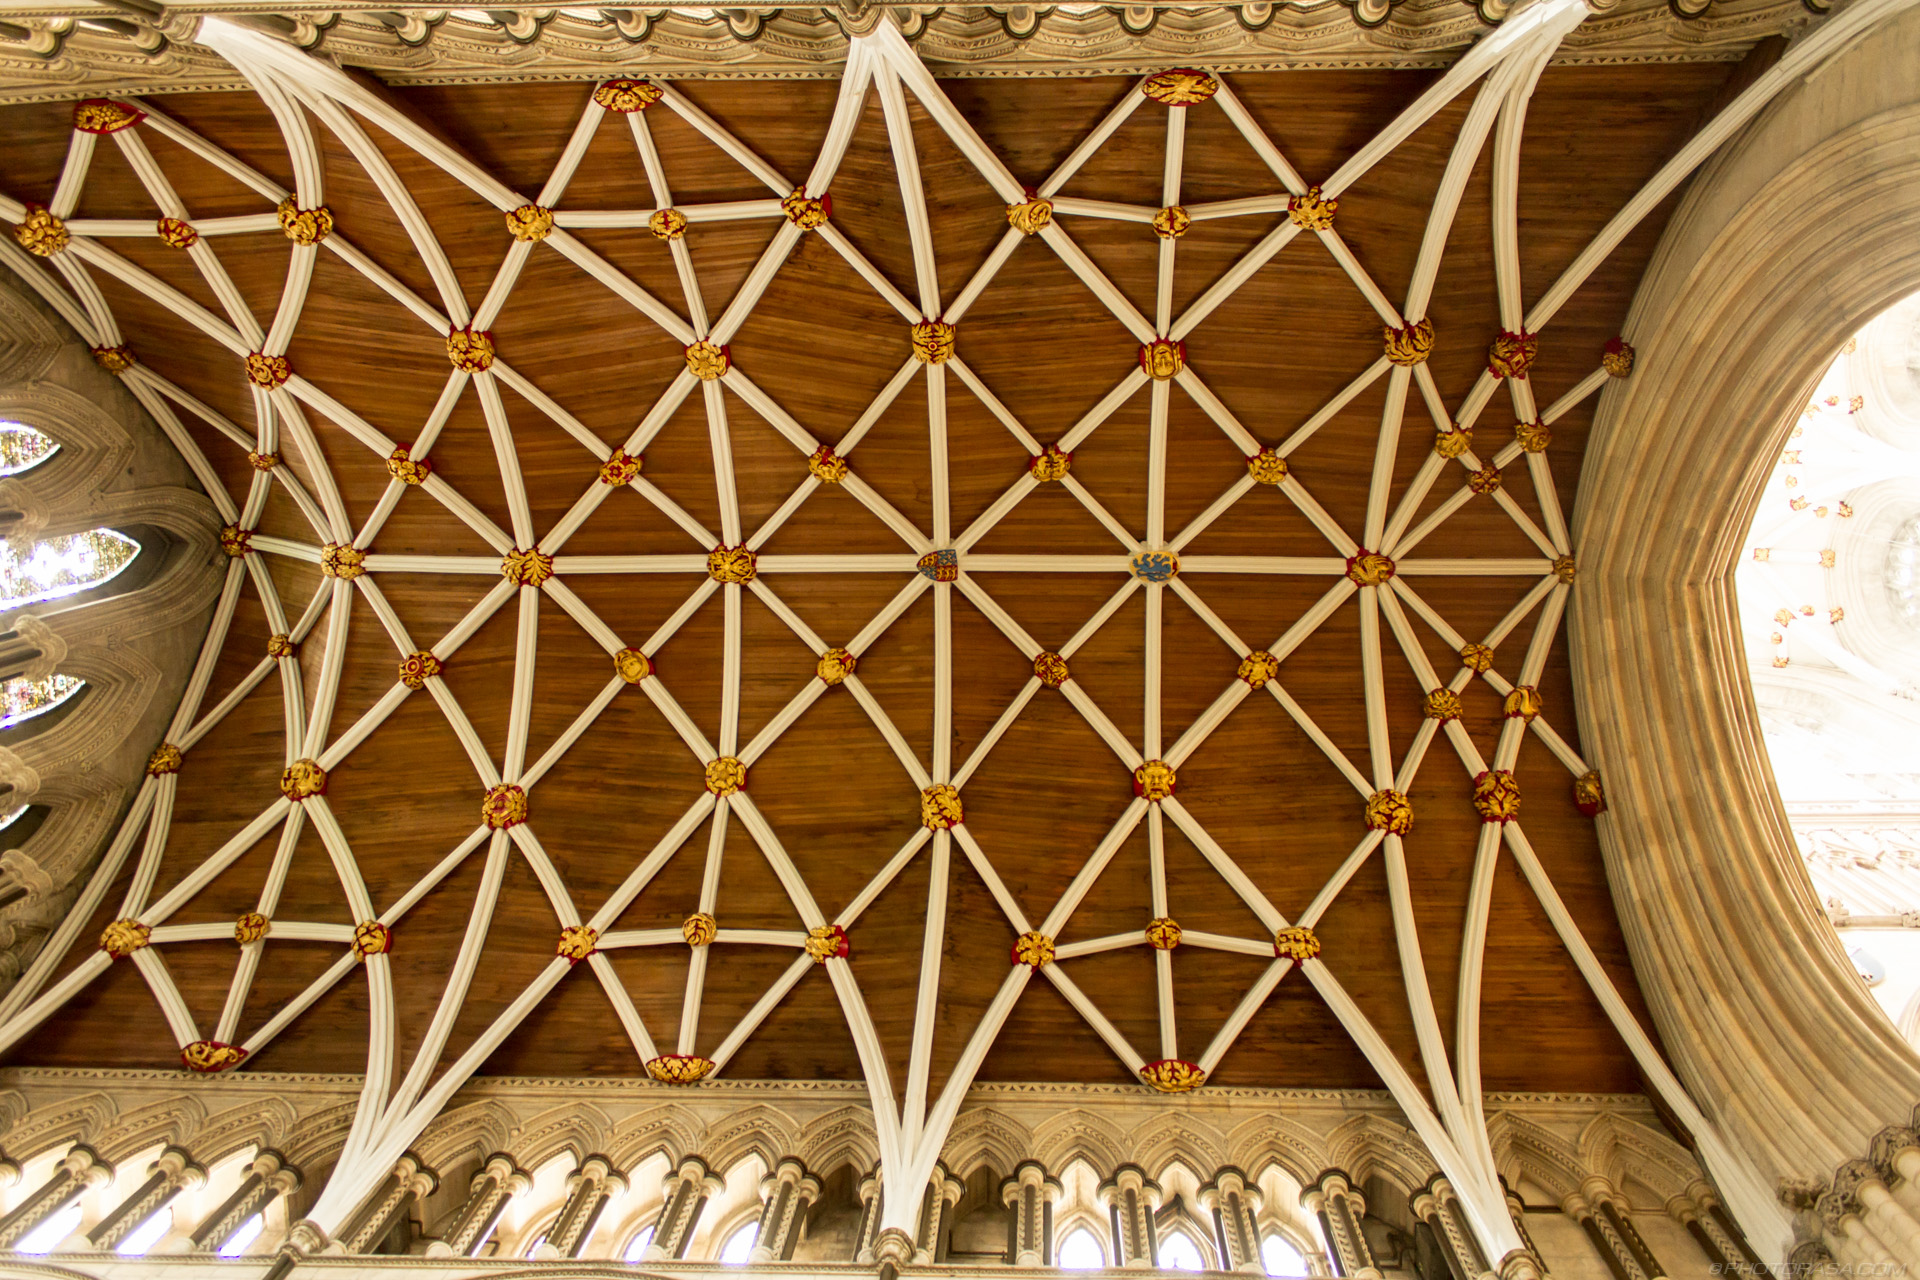 http://photorasa.com/places/yorkminster-cathedral/attachment/vaulted-wooden-cathedral-ceiling/